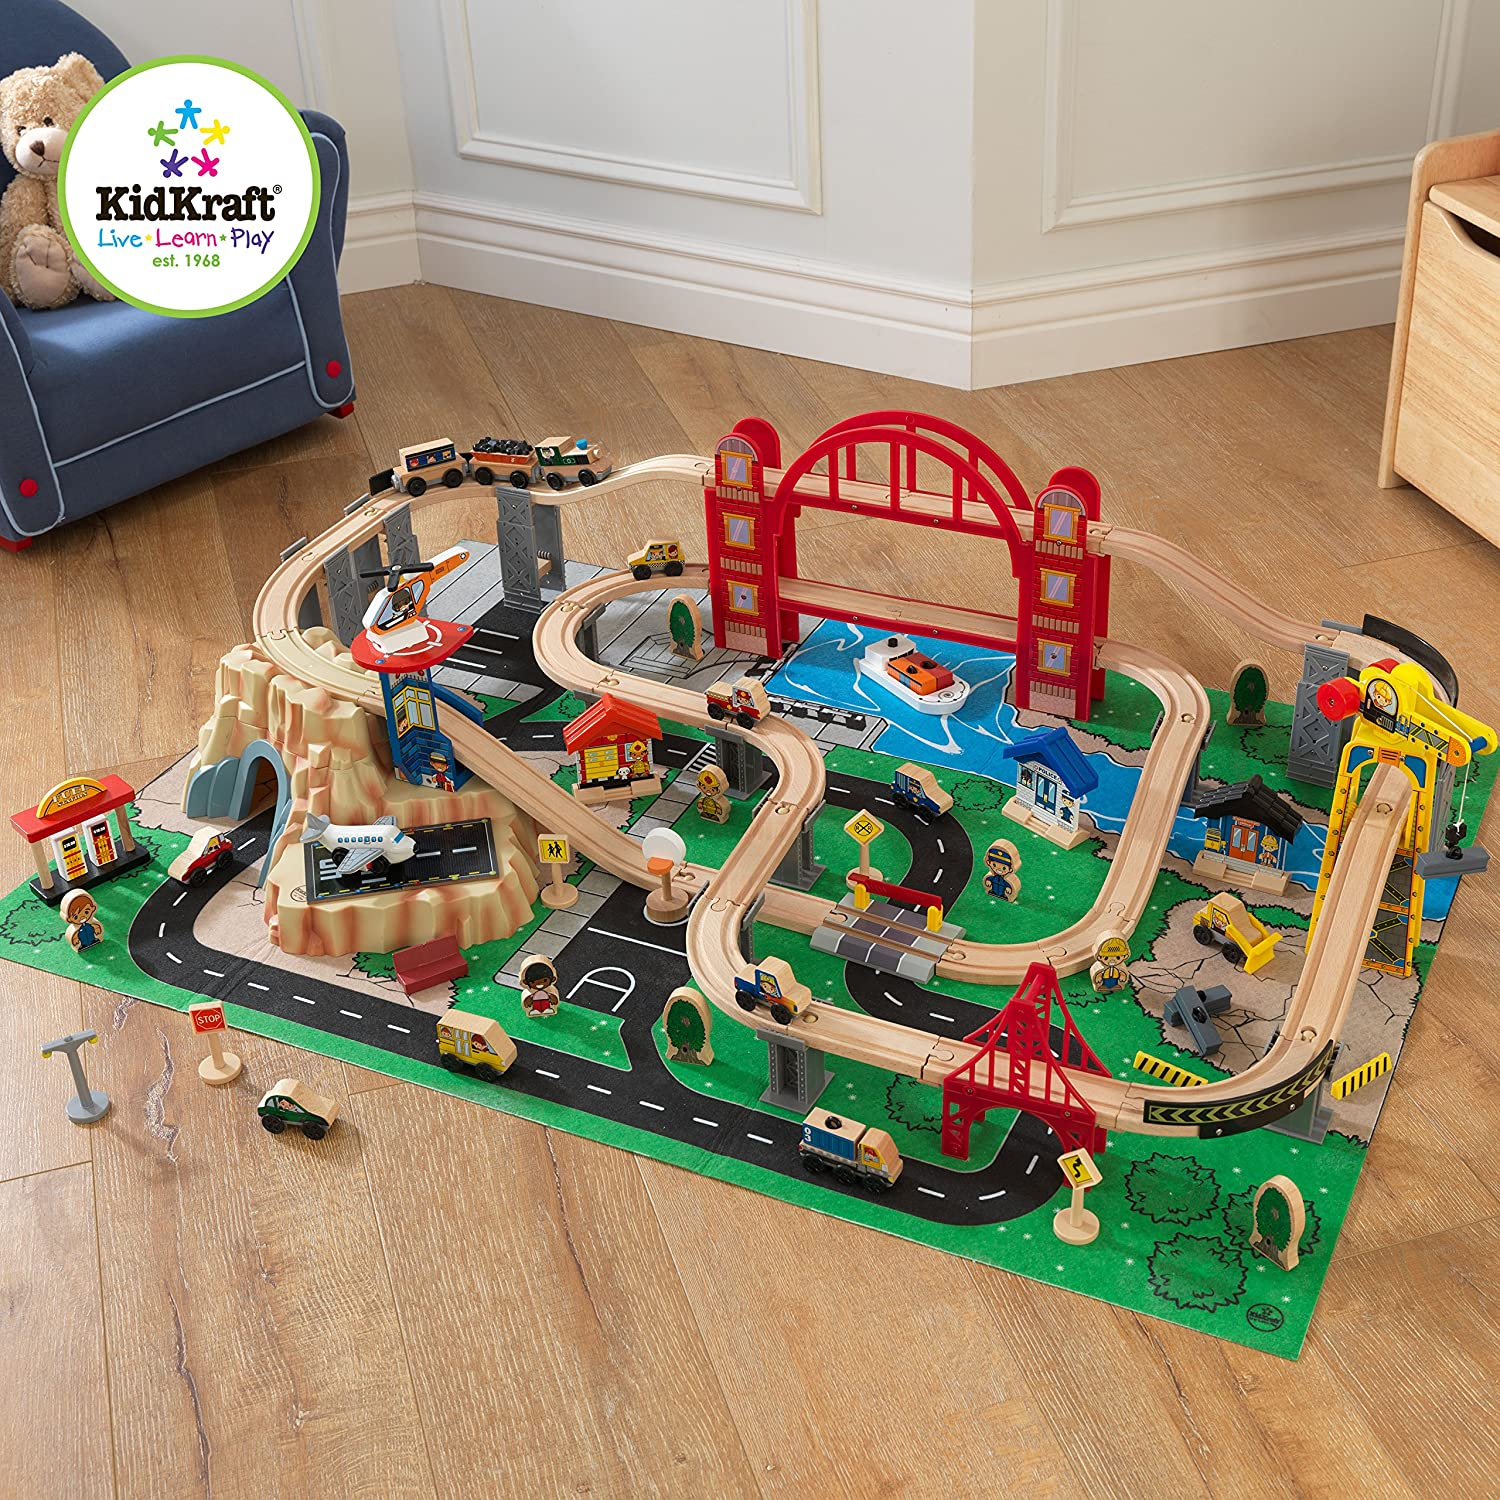 Kidkraft Metropolis Train Set with Roll-Up Felt Play Mat General General